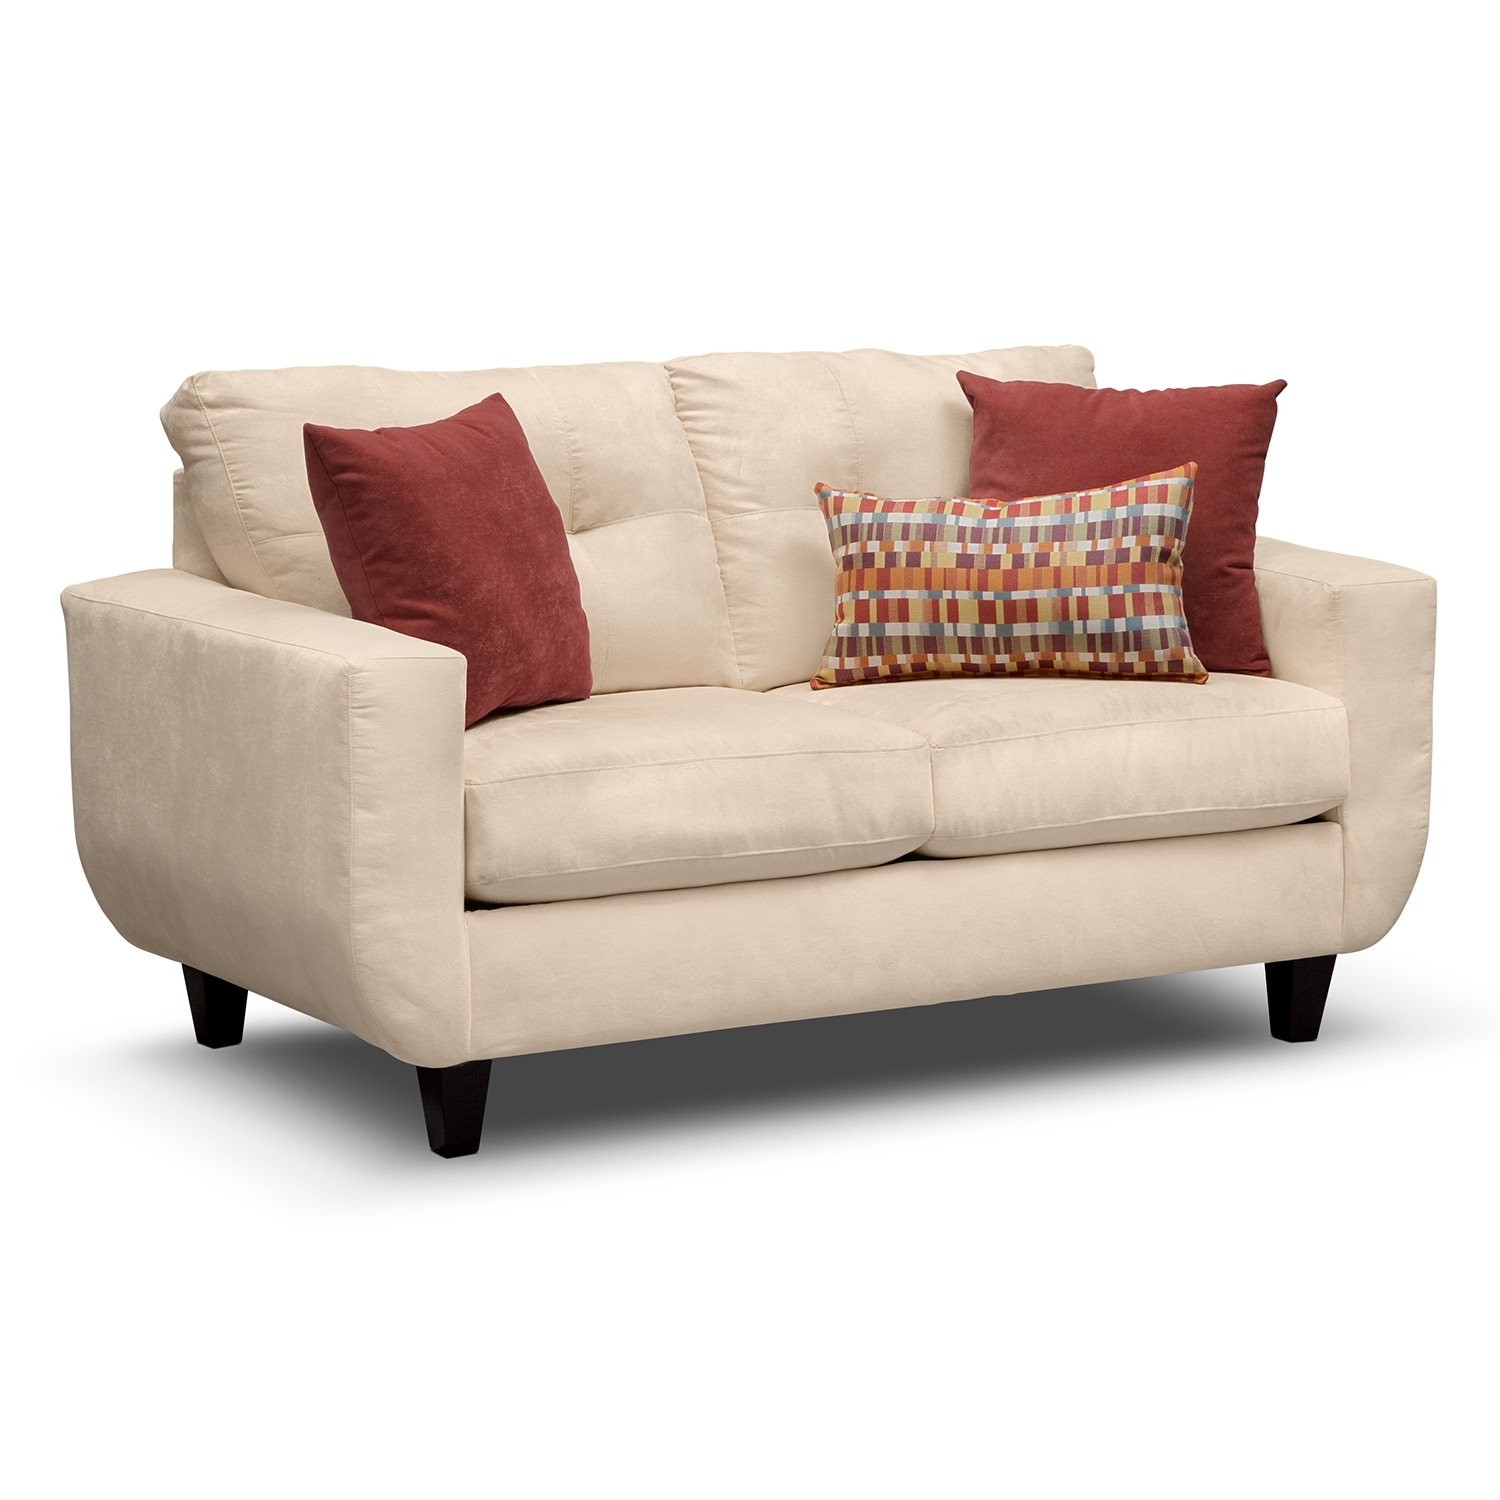 Living Room Furniture - Walker Cream Loveseat